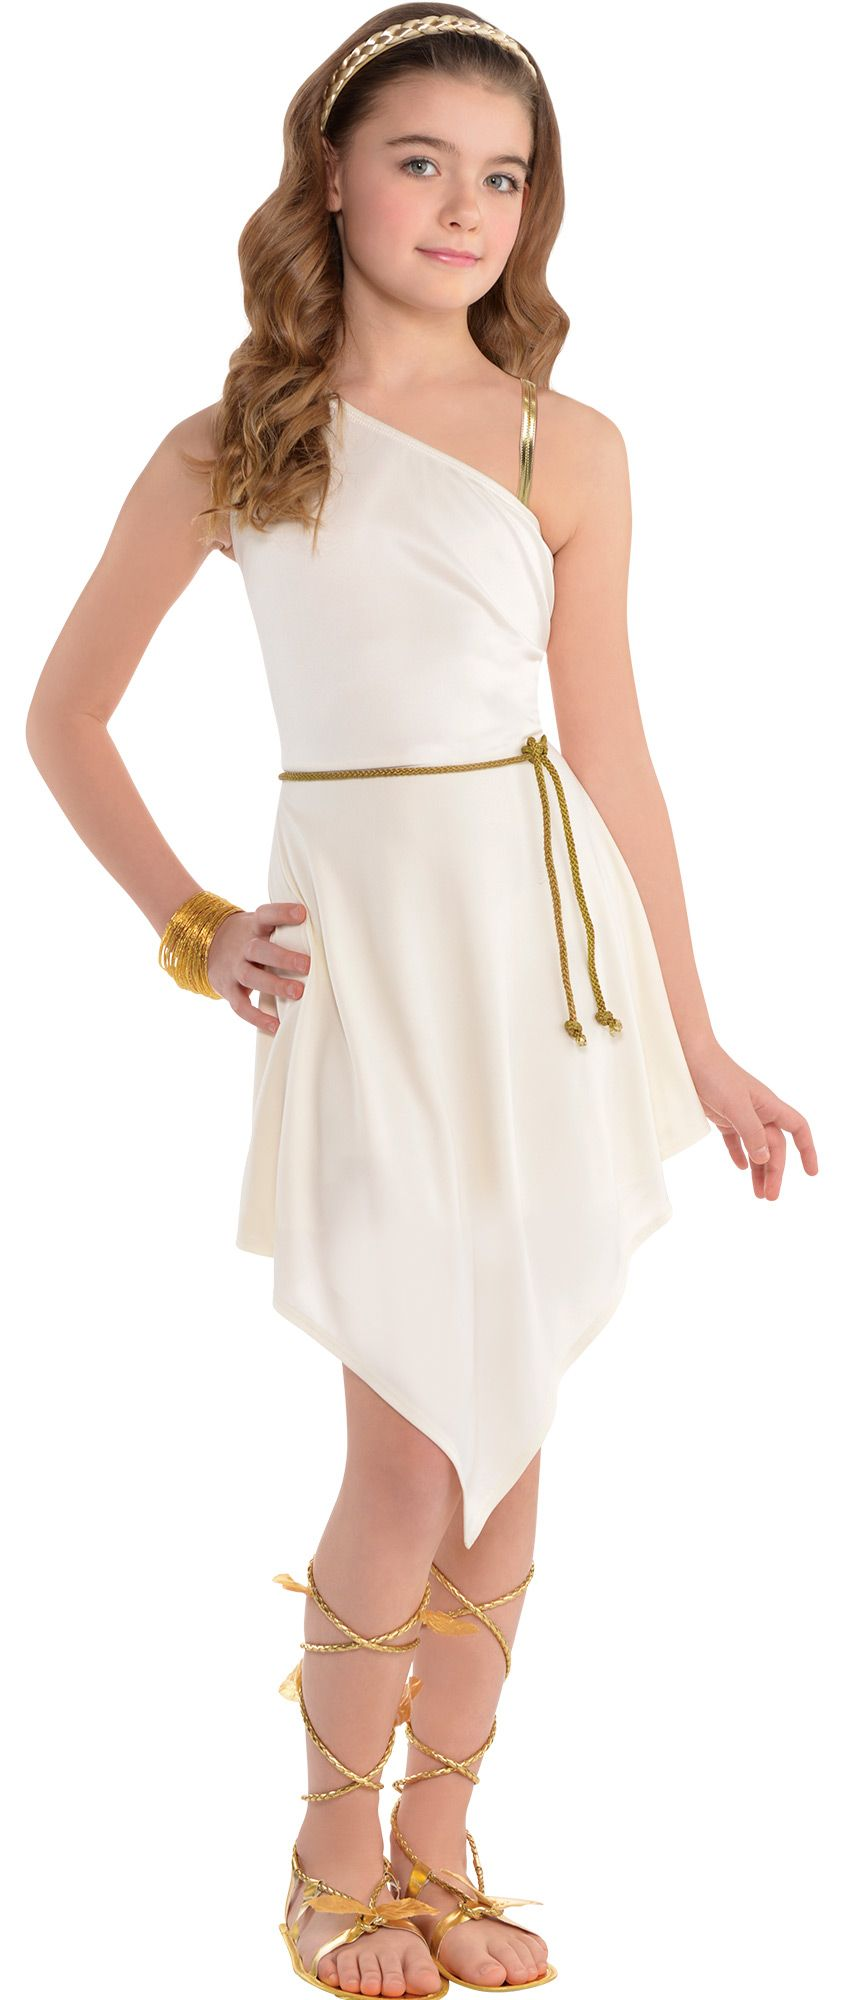 Create Your Look - Girls' Roman Goddess